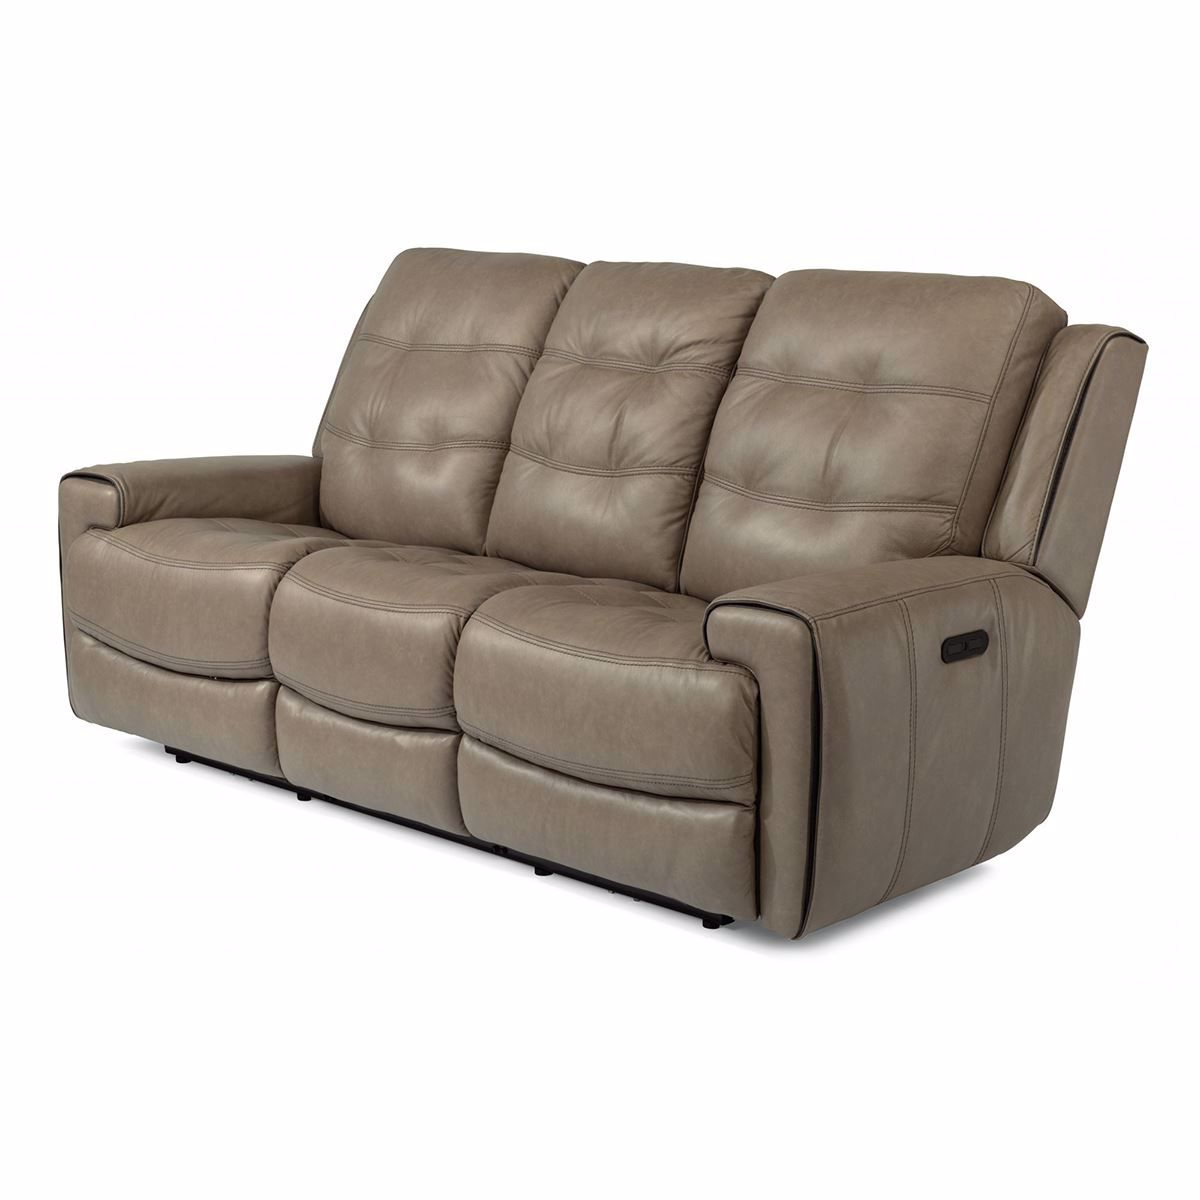 Trendy Charleston Power Reclining Sofas For Wicklow Power Reclining Leather Sofa With Power Headrest (View 3 of 15)